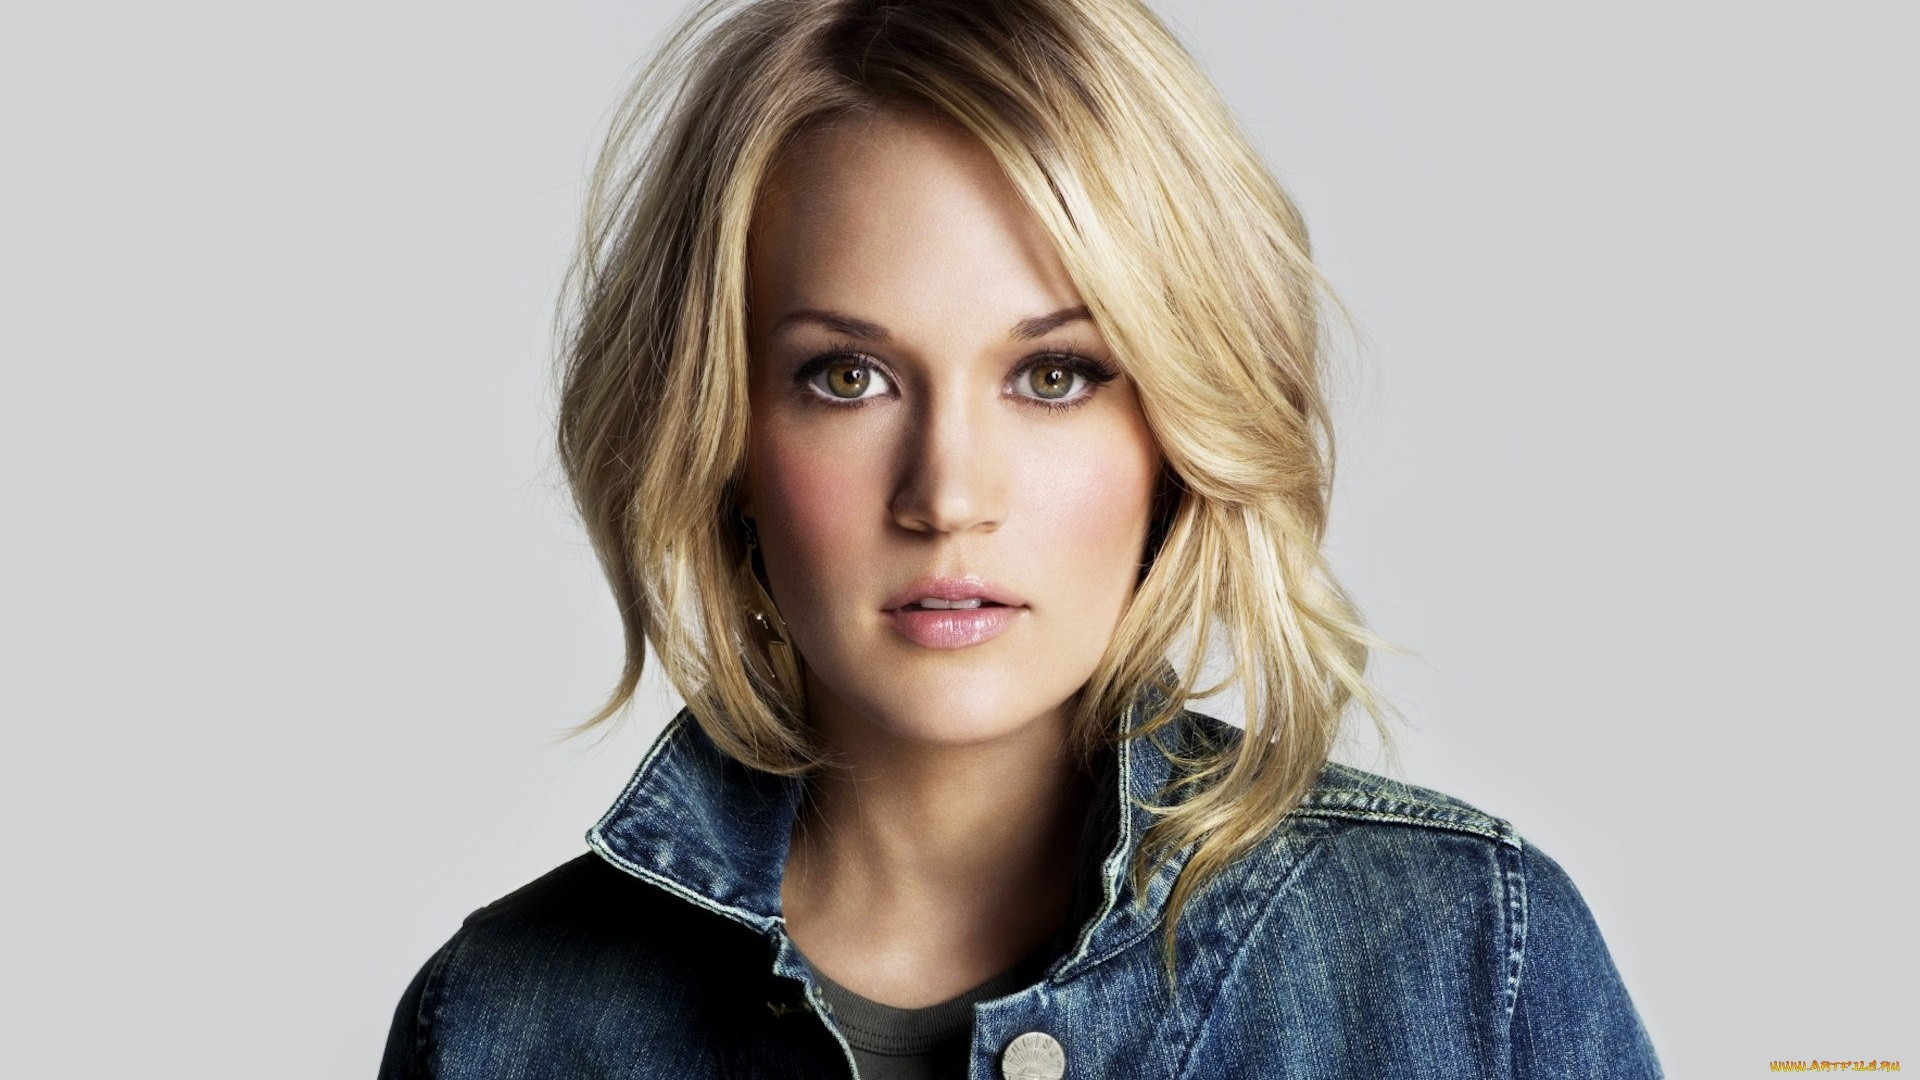 Carrie Underwood Wallpaper and Background